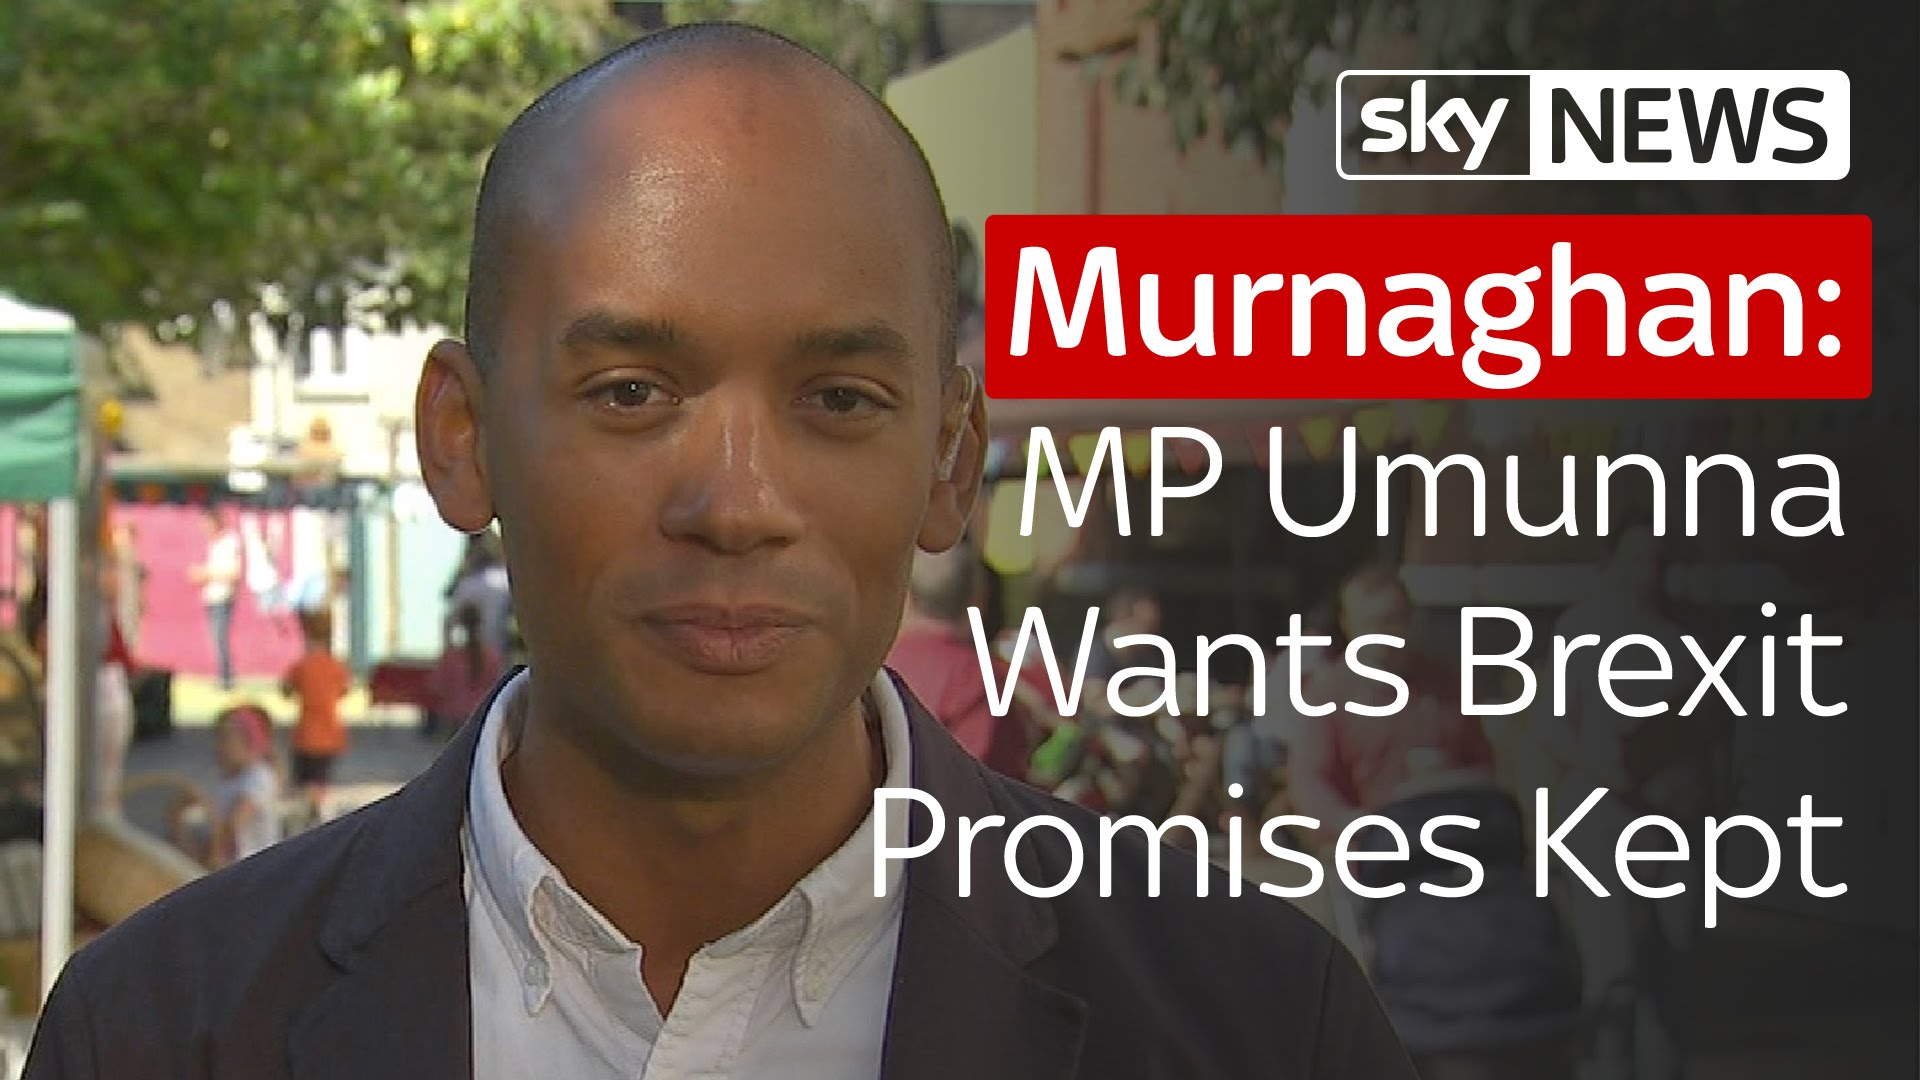 Labour MP Umunna Wants Brexit Promises Kept 4